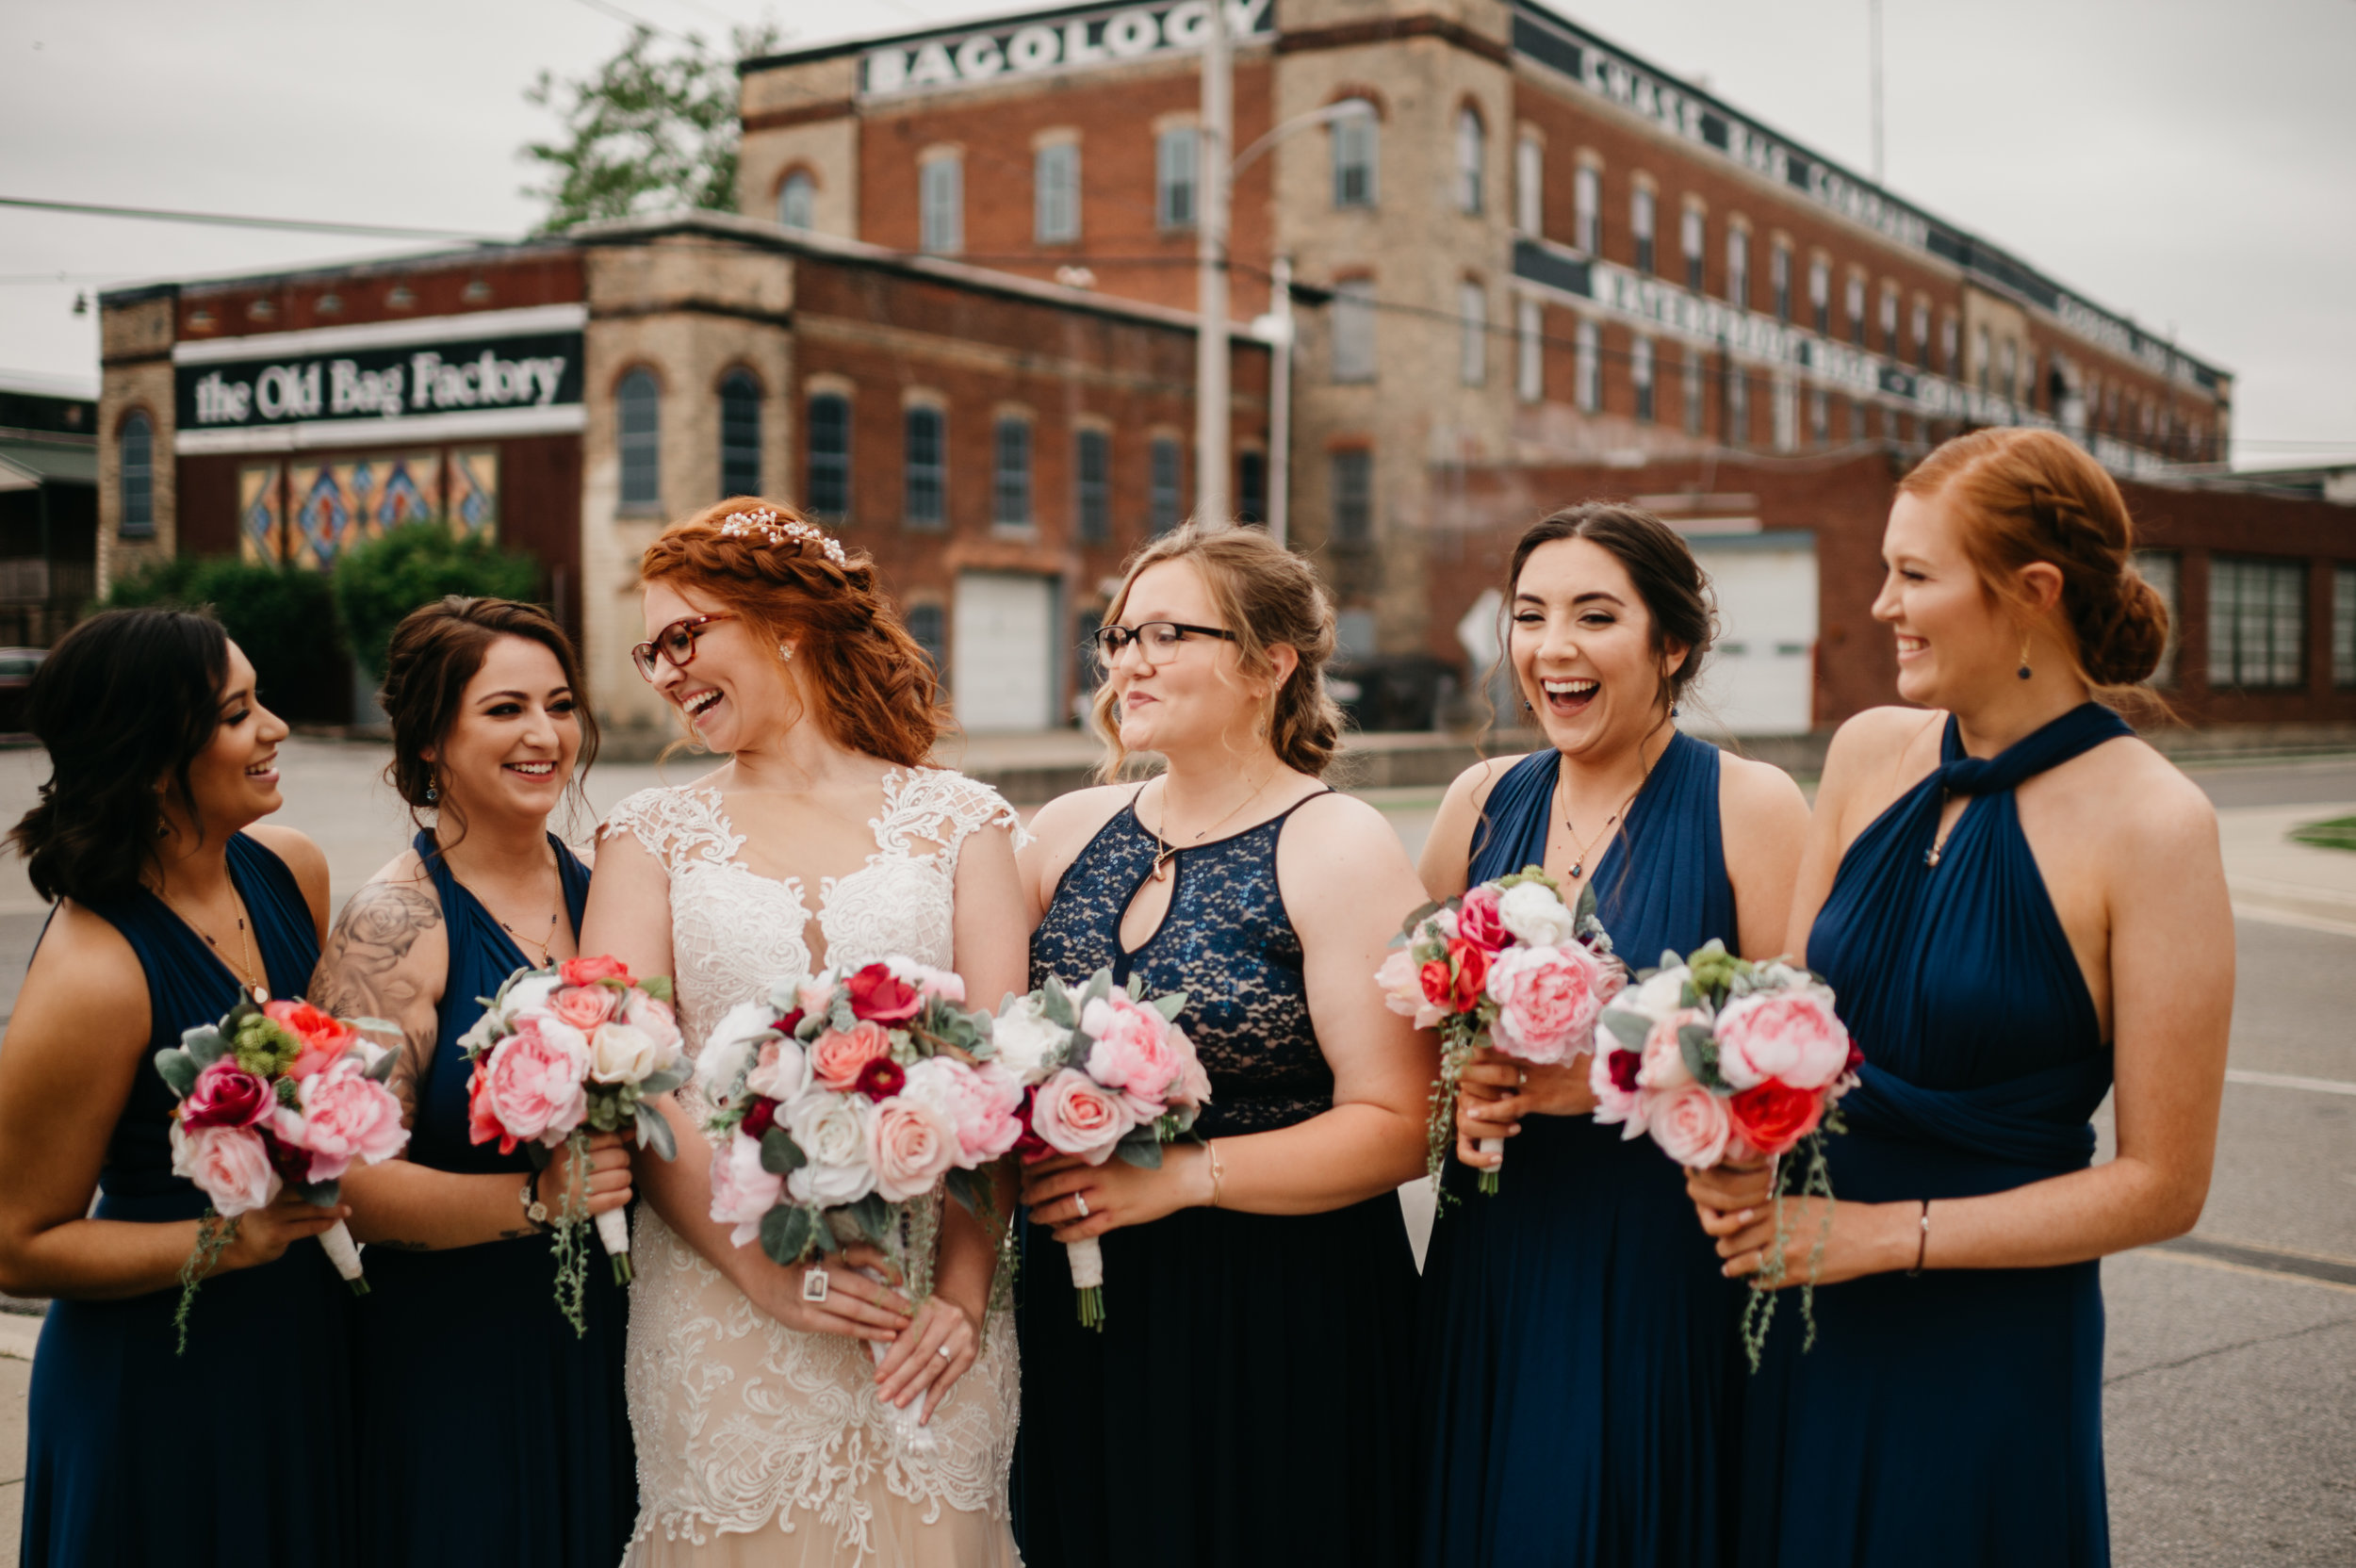 Bread & Chocolate Goshen IN Wedding - Hey Sisters! Photography